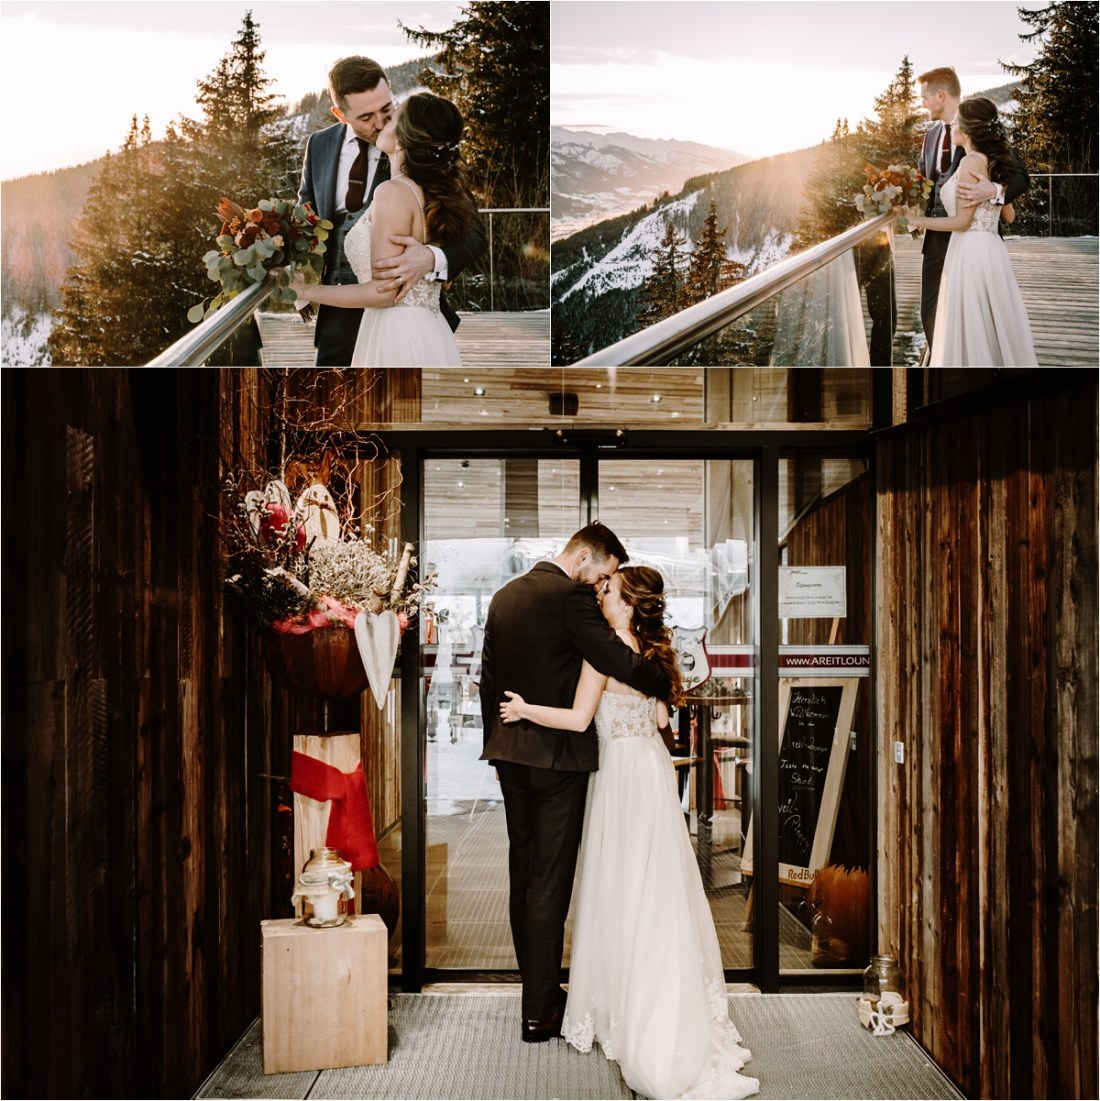 Gerry-Rae & Nick enjoy a mountain sunset at the Areit Lounge on their wedding day in Zell Am See by Wild Connections Photography